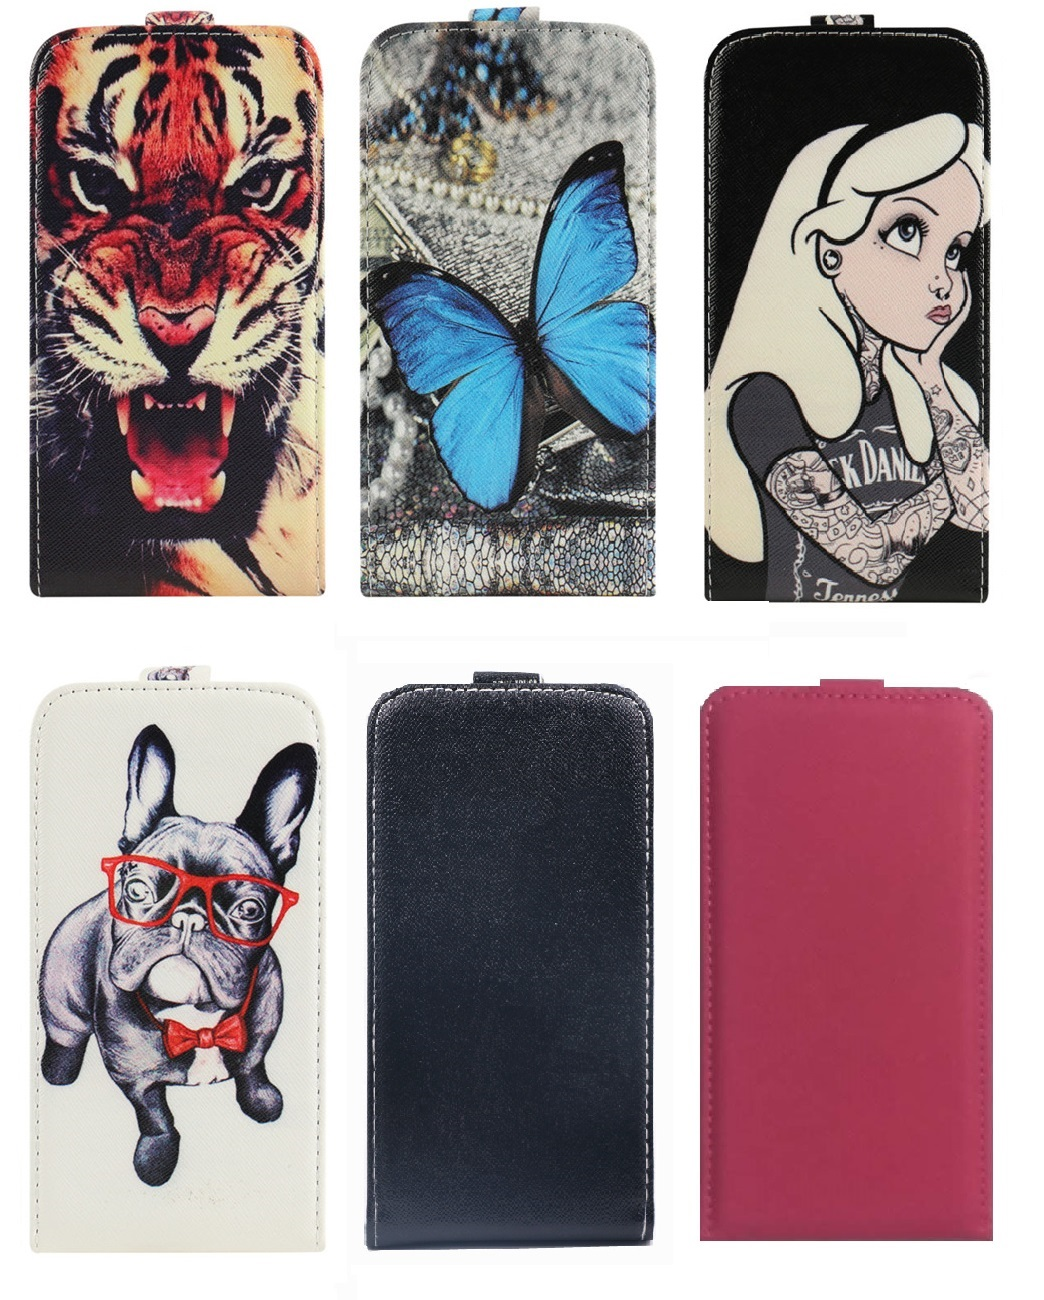 Yooyour Case for Senseit <font><b>E510</b></font> R450 A109 Printed PU Leather Case <font><b>Cover</b></font> housing shell For Senseit E400 E500 A109 R450 A200 <font><b>E510</b></font> image